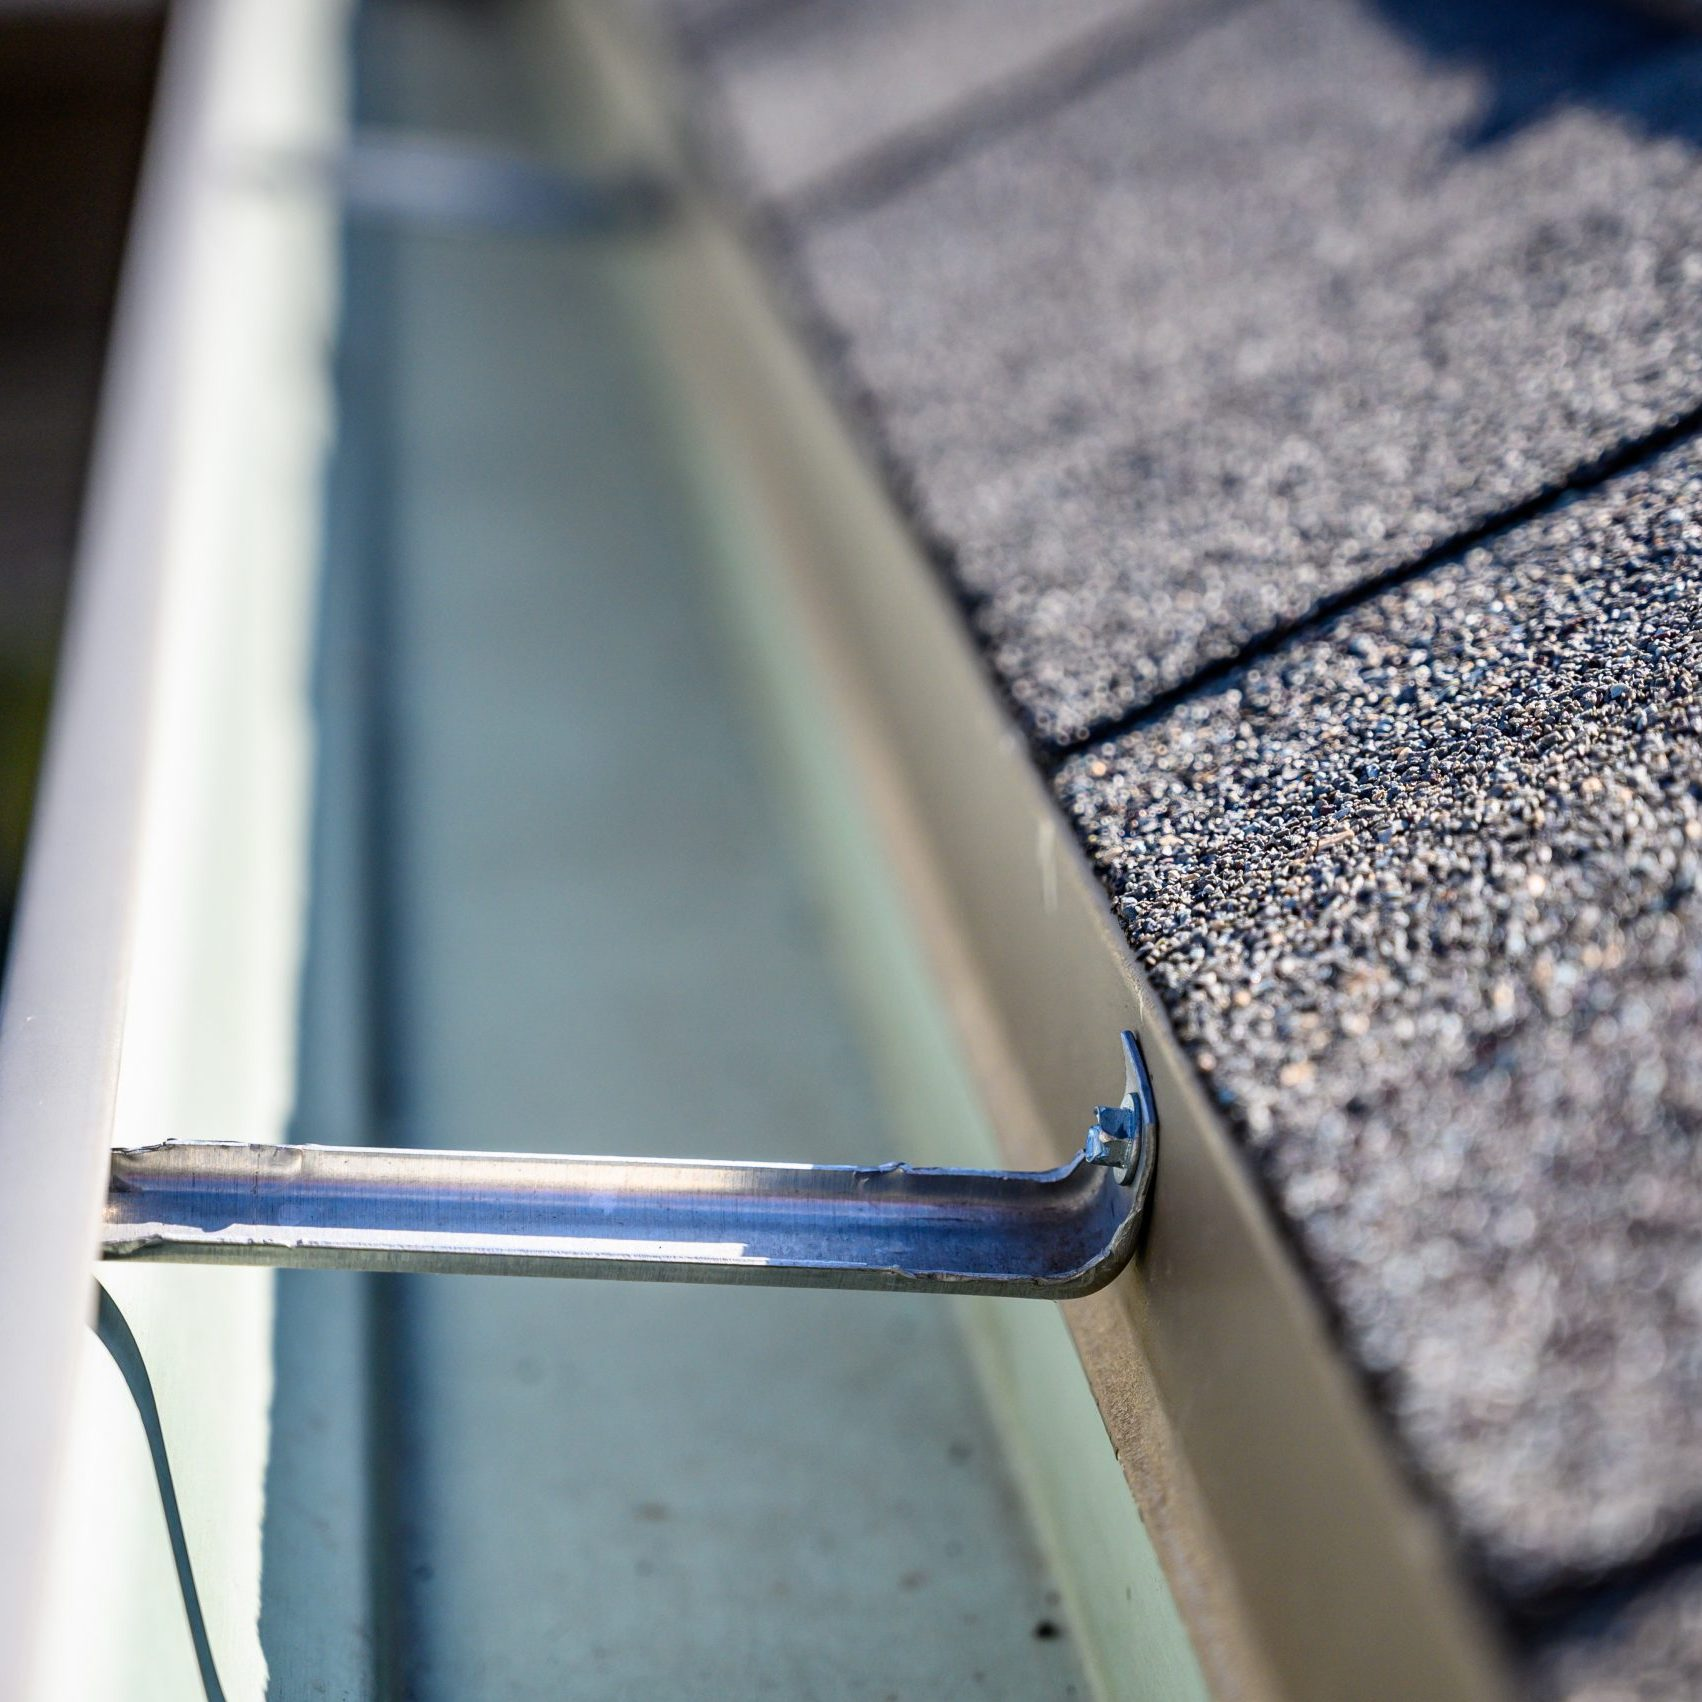 view inside roof gutter with clips and edge of shingles